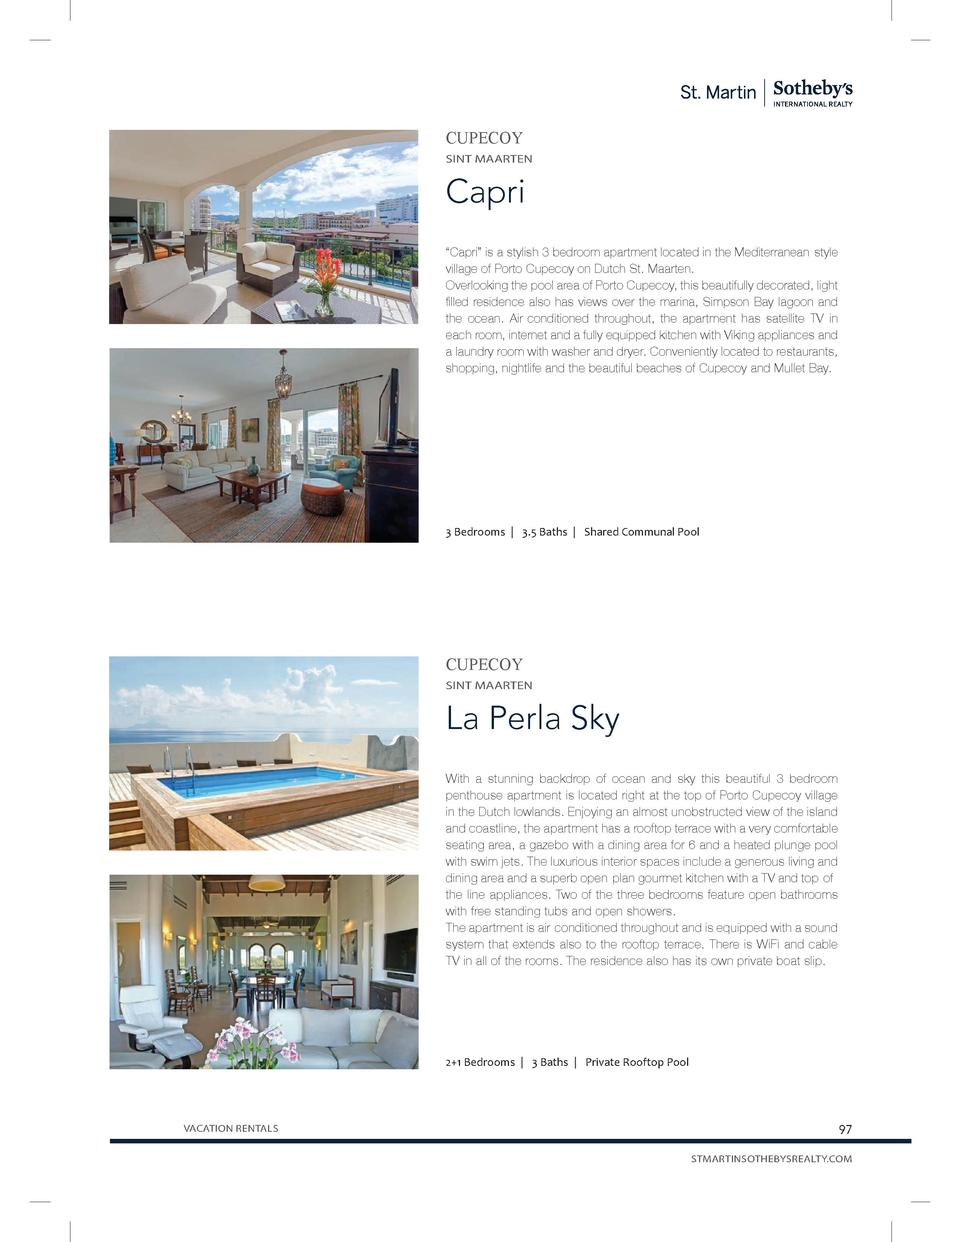 CUPECOY SINT MAARTEN  Capri    Capri    is a stylish 3 bedroom apartment located in the Mediterranean-style village of Por...